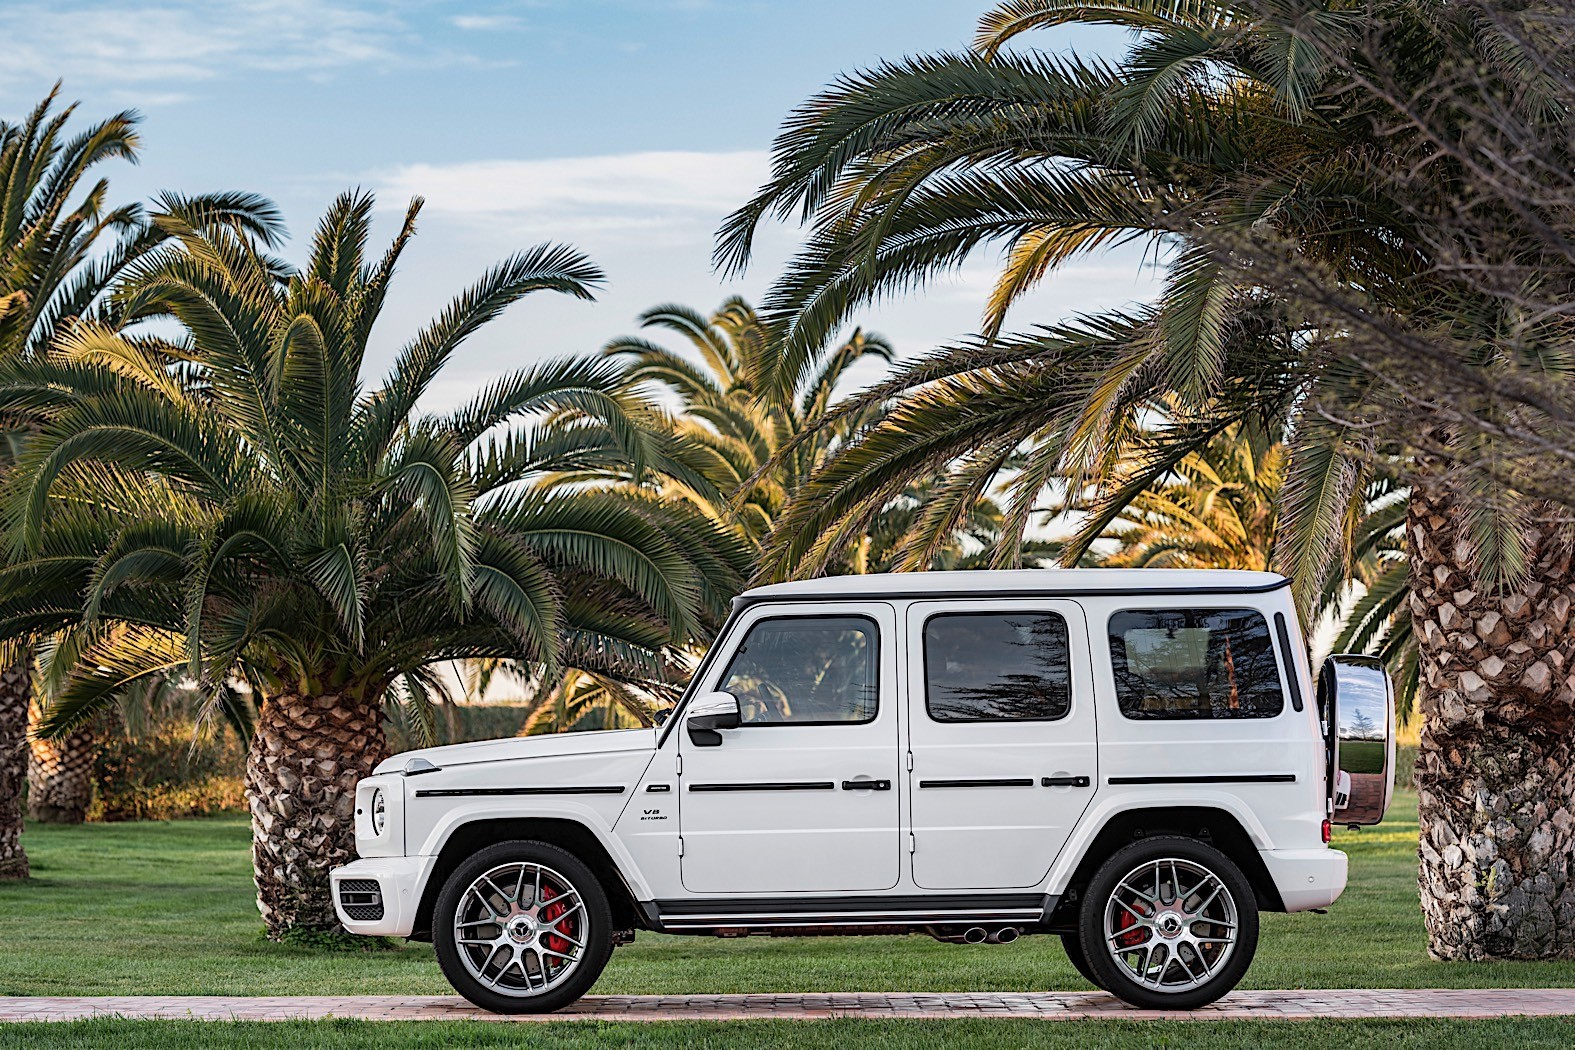 Mercedes Amg G 63 Wo Produziert: Fastest Ever Mercedes-AMG G 63 Breaks Cover